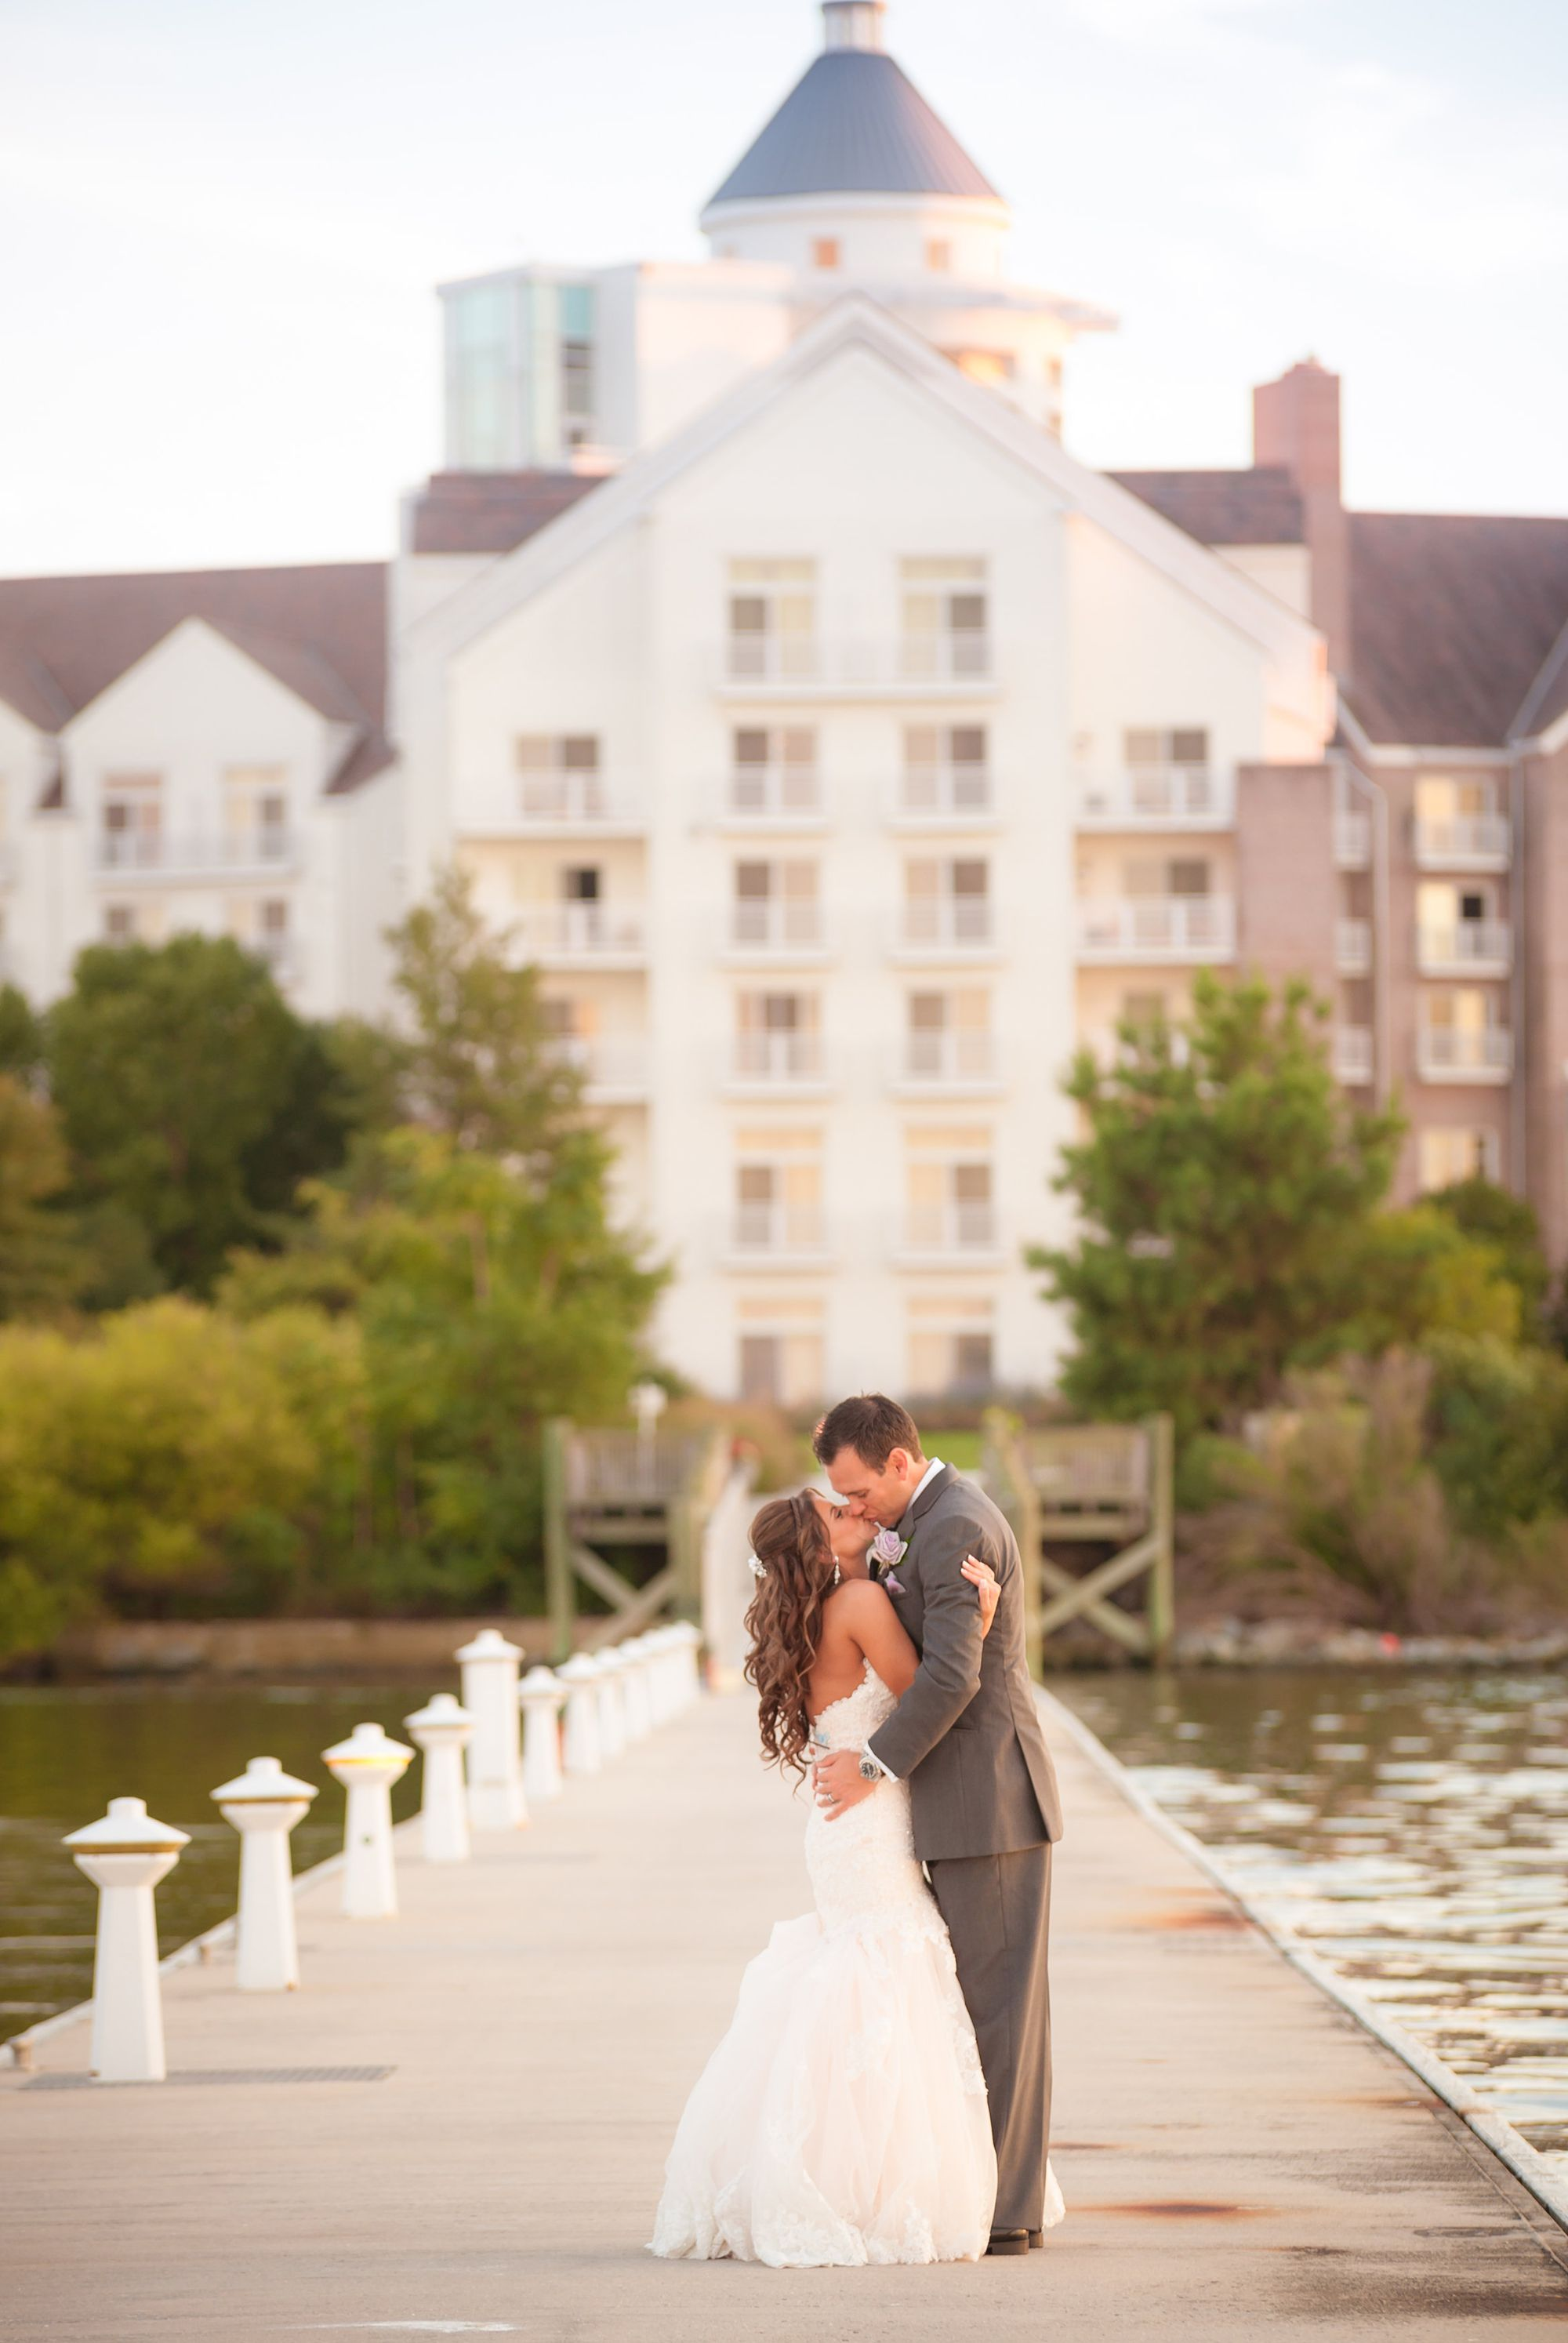 Hyatt Chesapeake Bay wedding